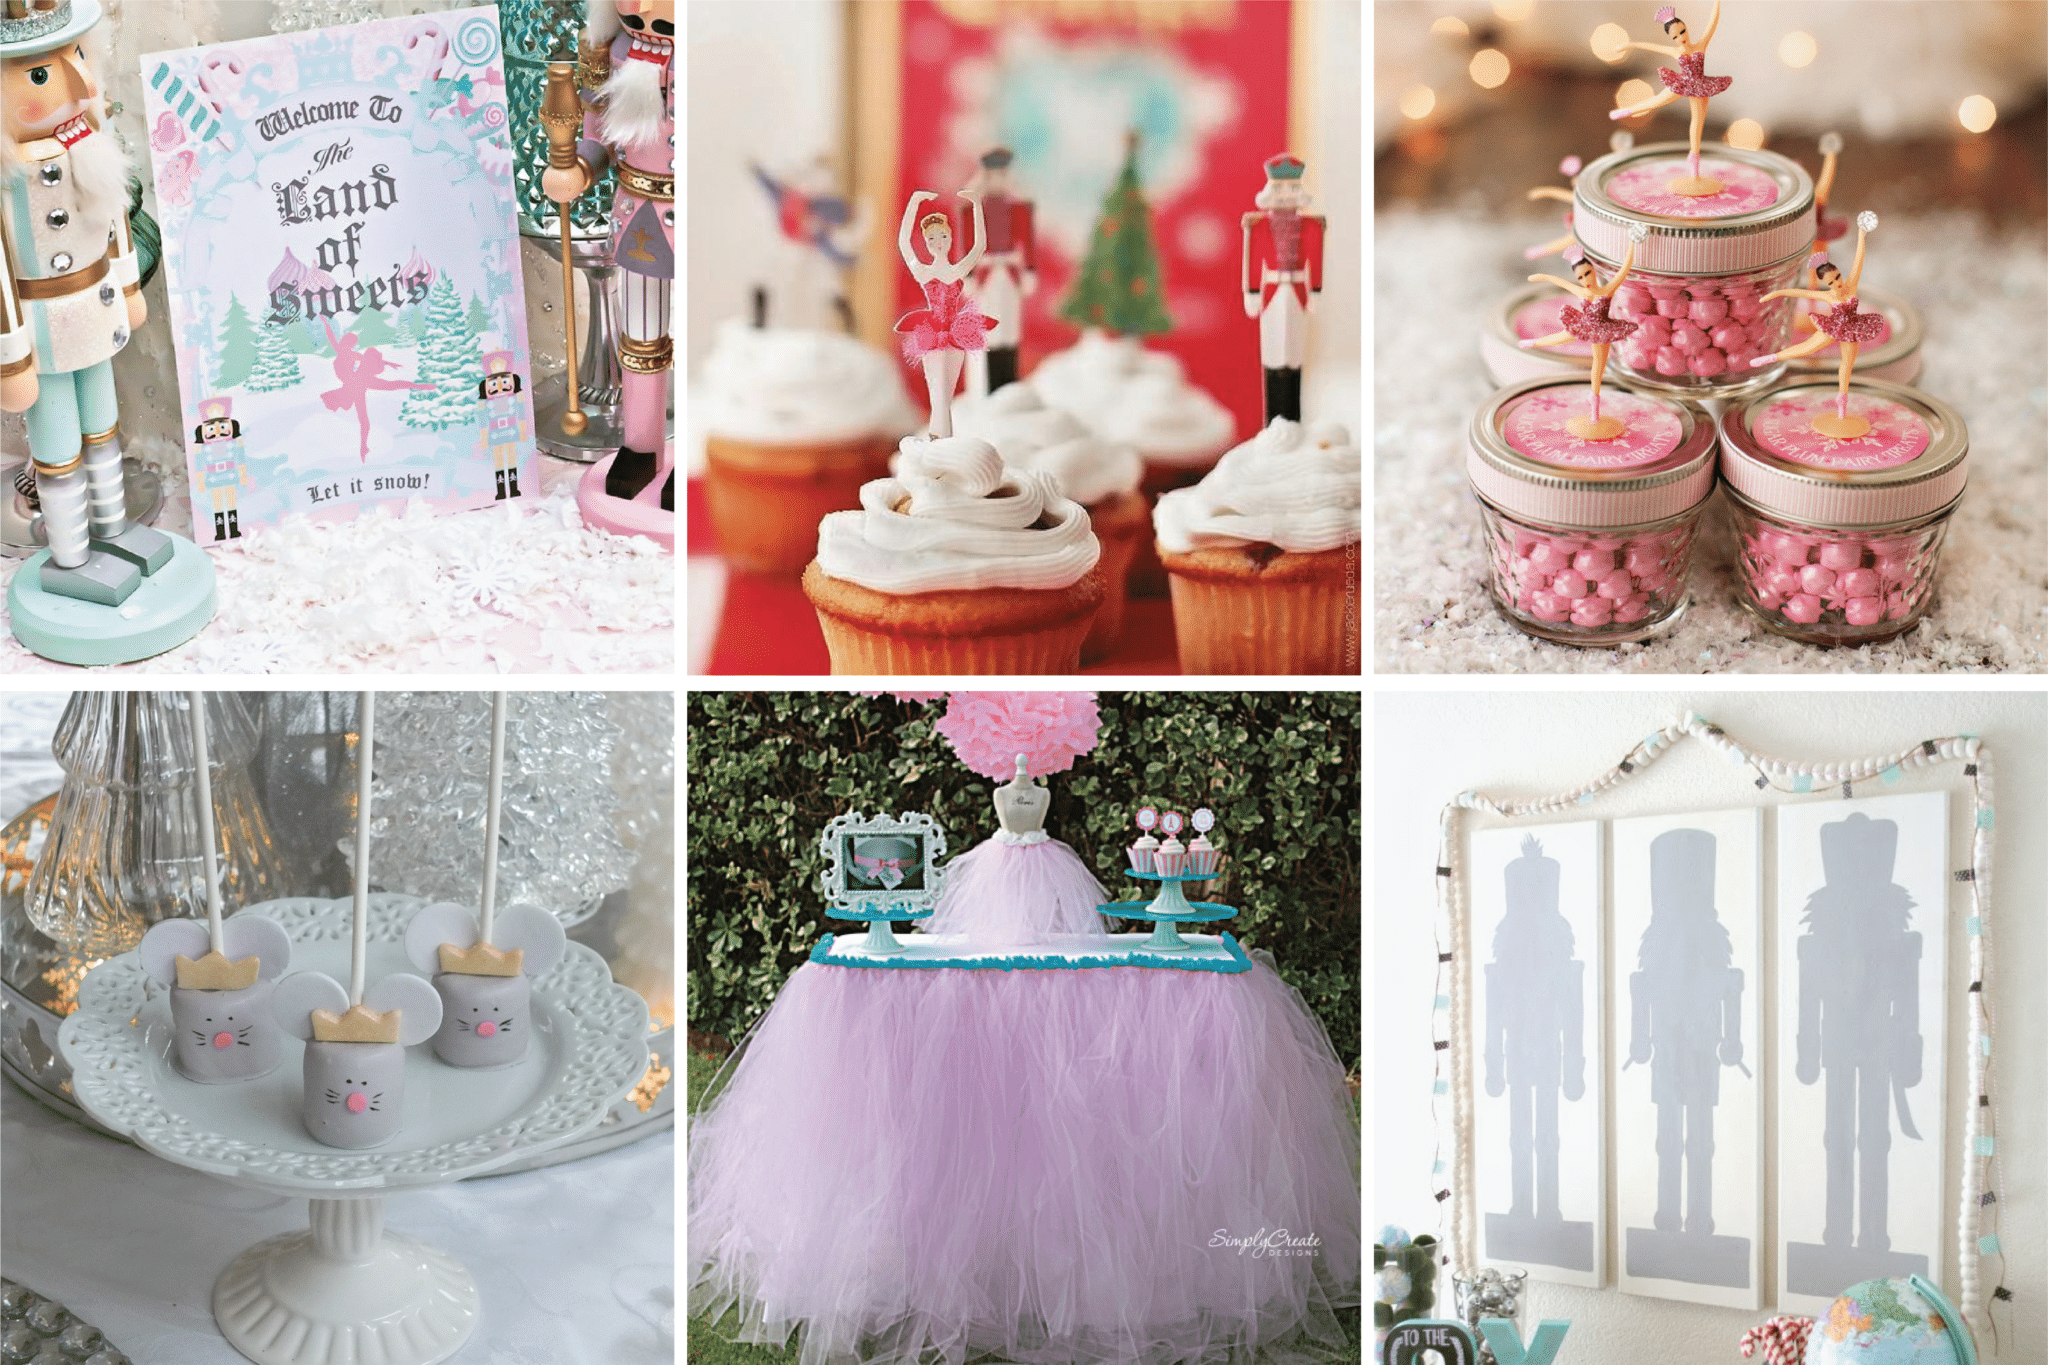 The Nutcracker Party Food Ideas